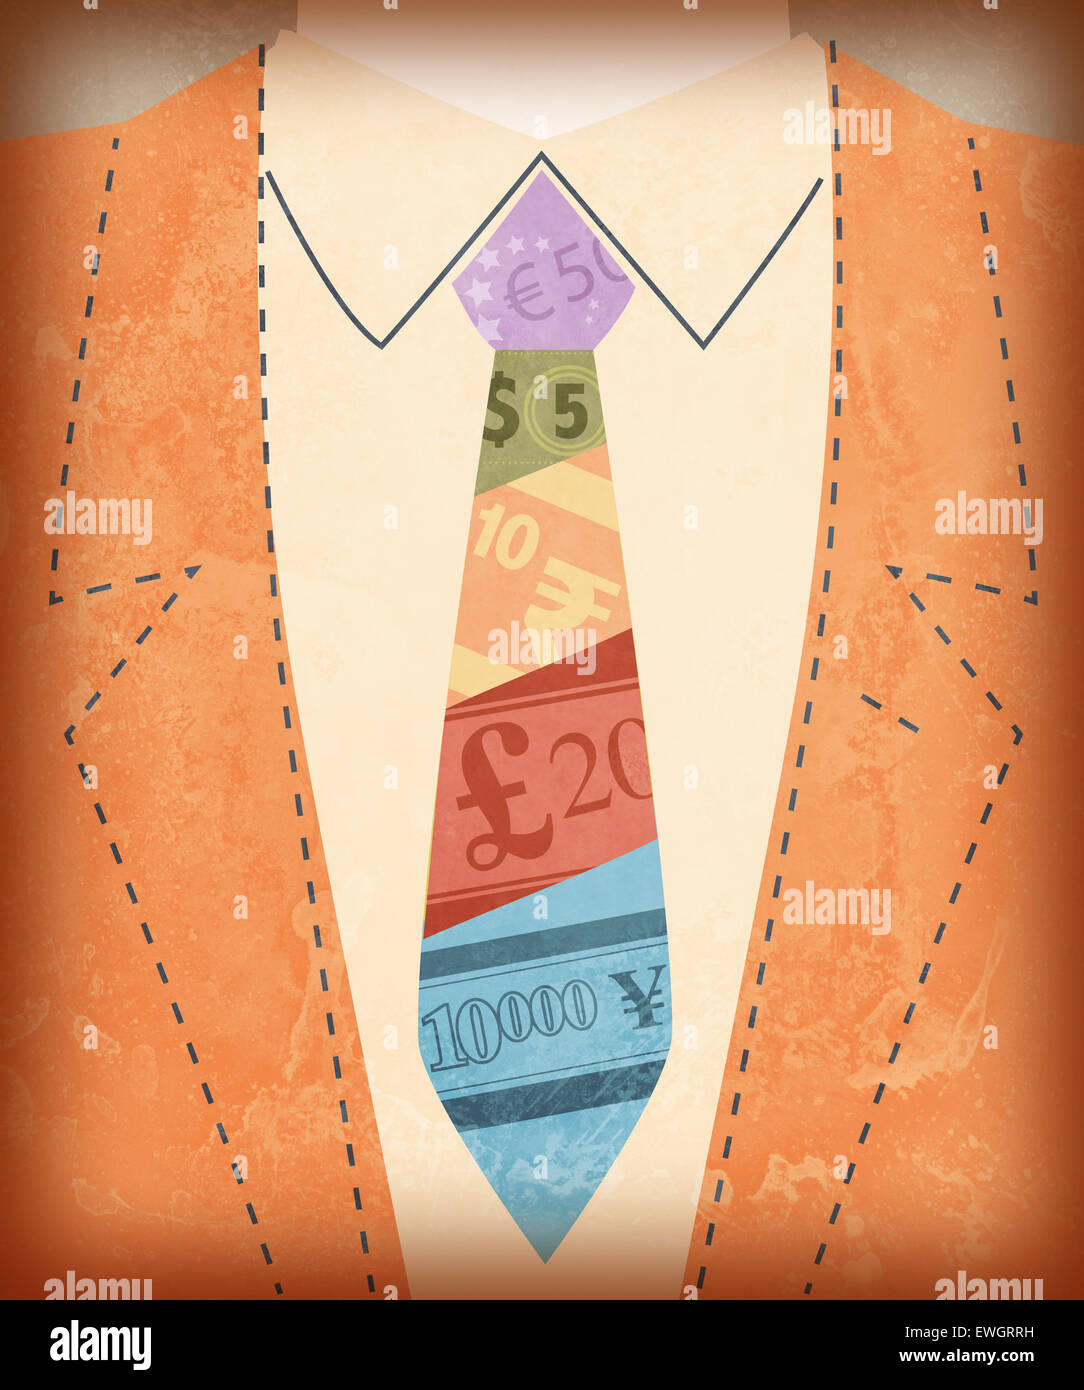 Midsection view of businessman with international currency symbols on tie - Stock Image